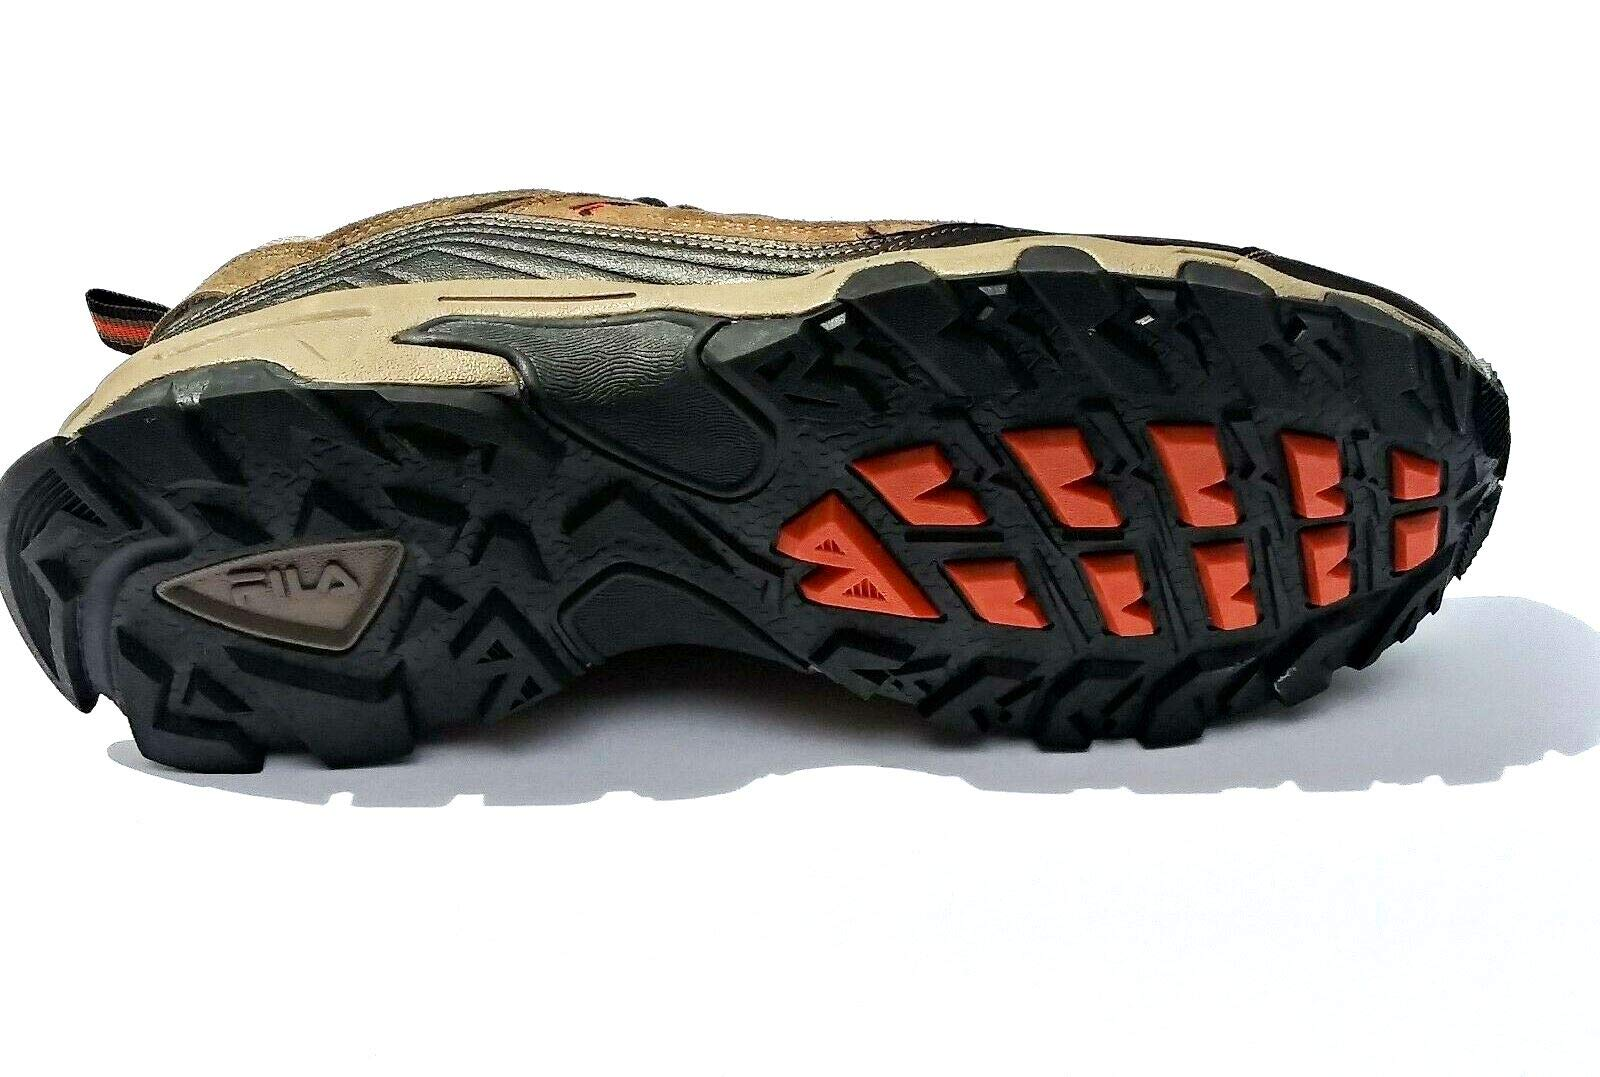 Fila Men's Outdoor Hiking Trail Running Athletic Shoes Brown/Orange